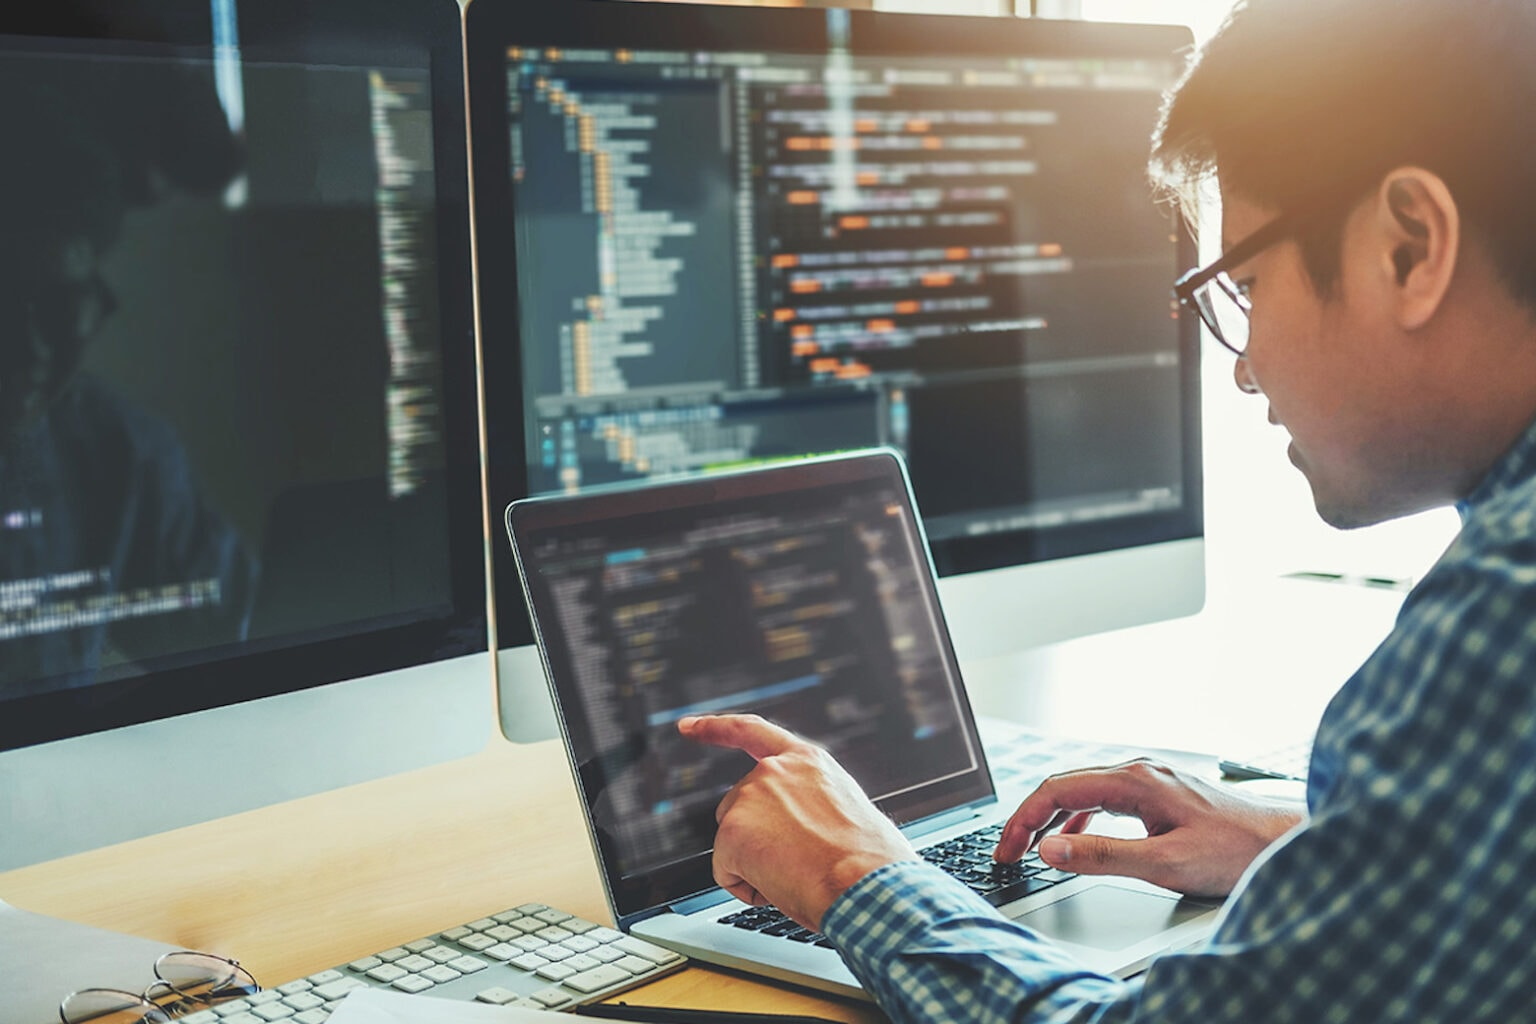 This course is perfect to kickstart your coding career